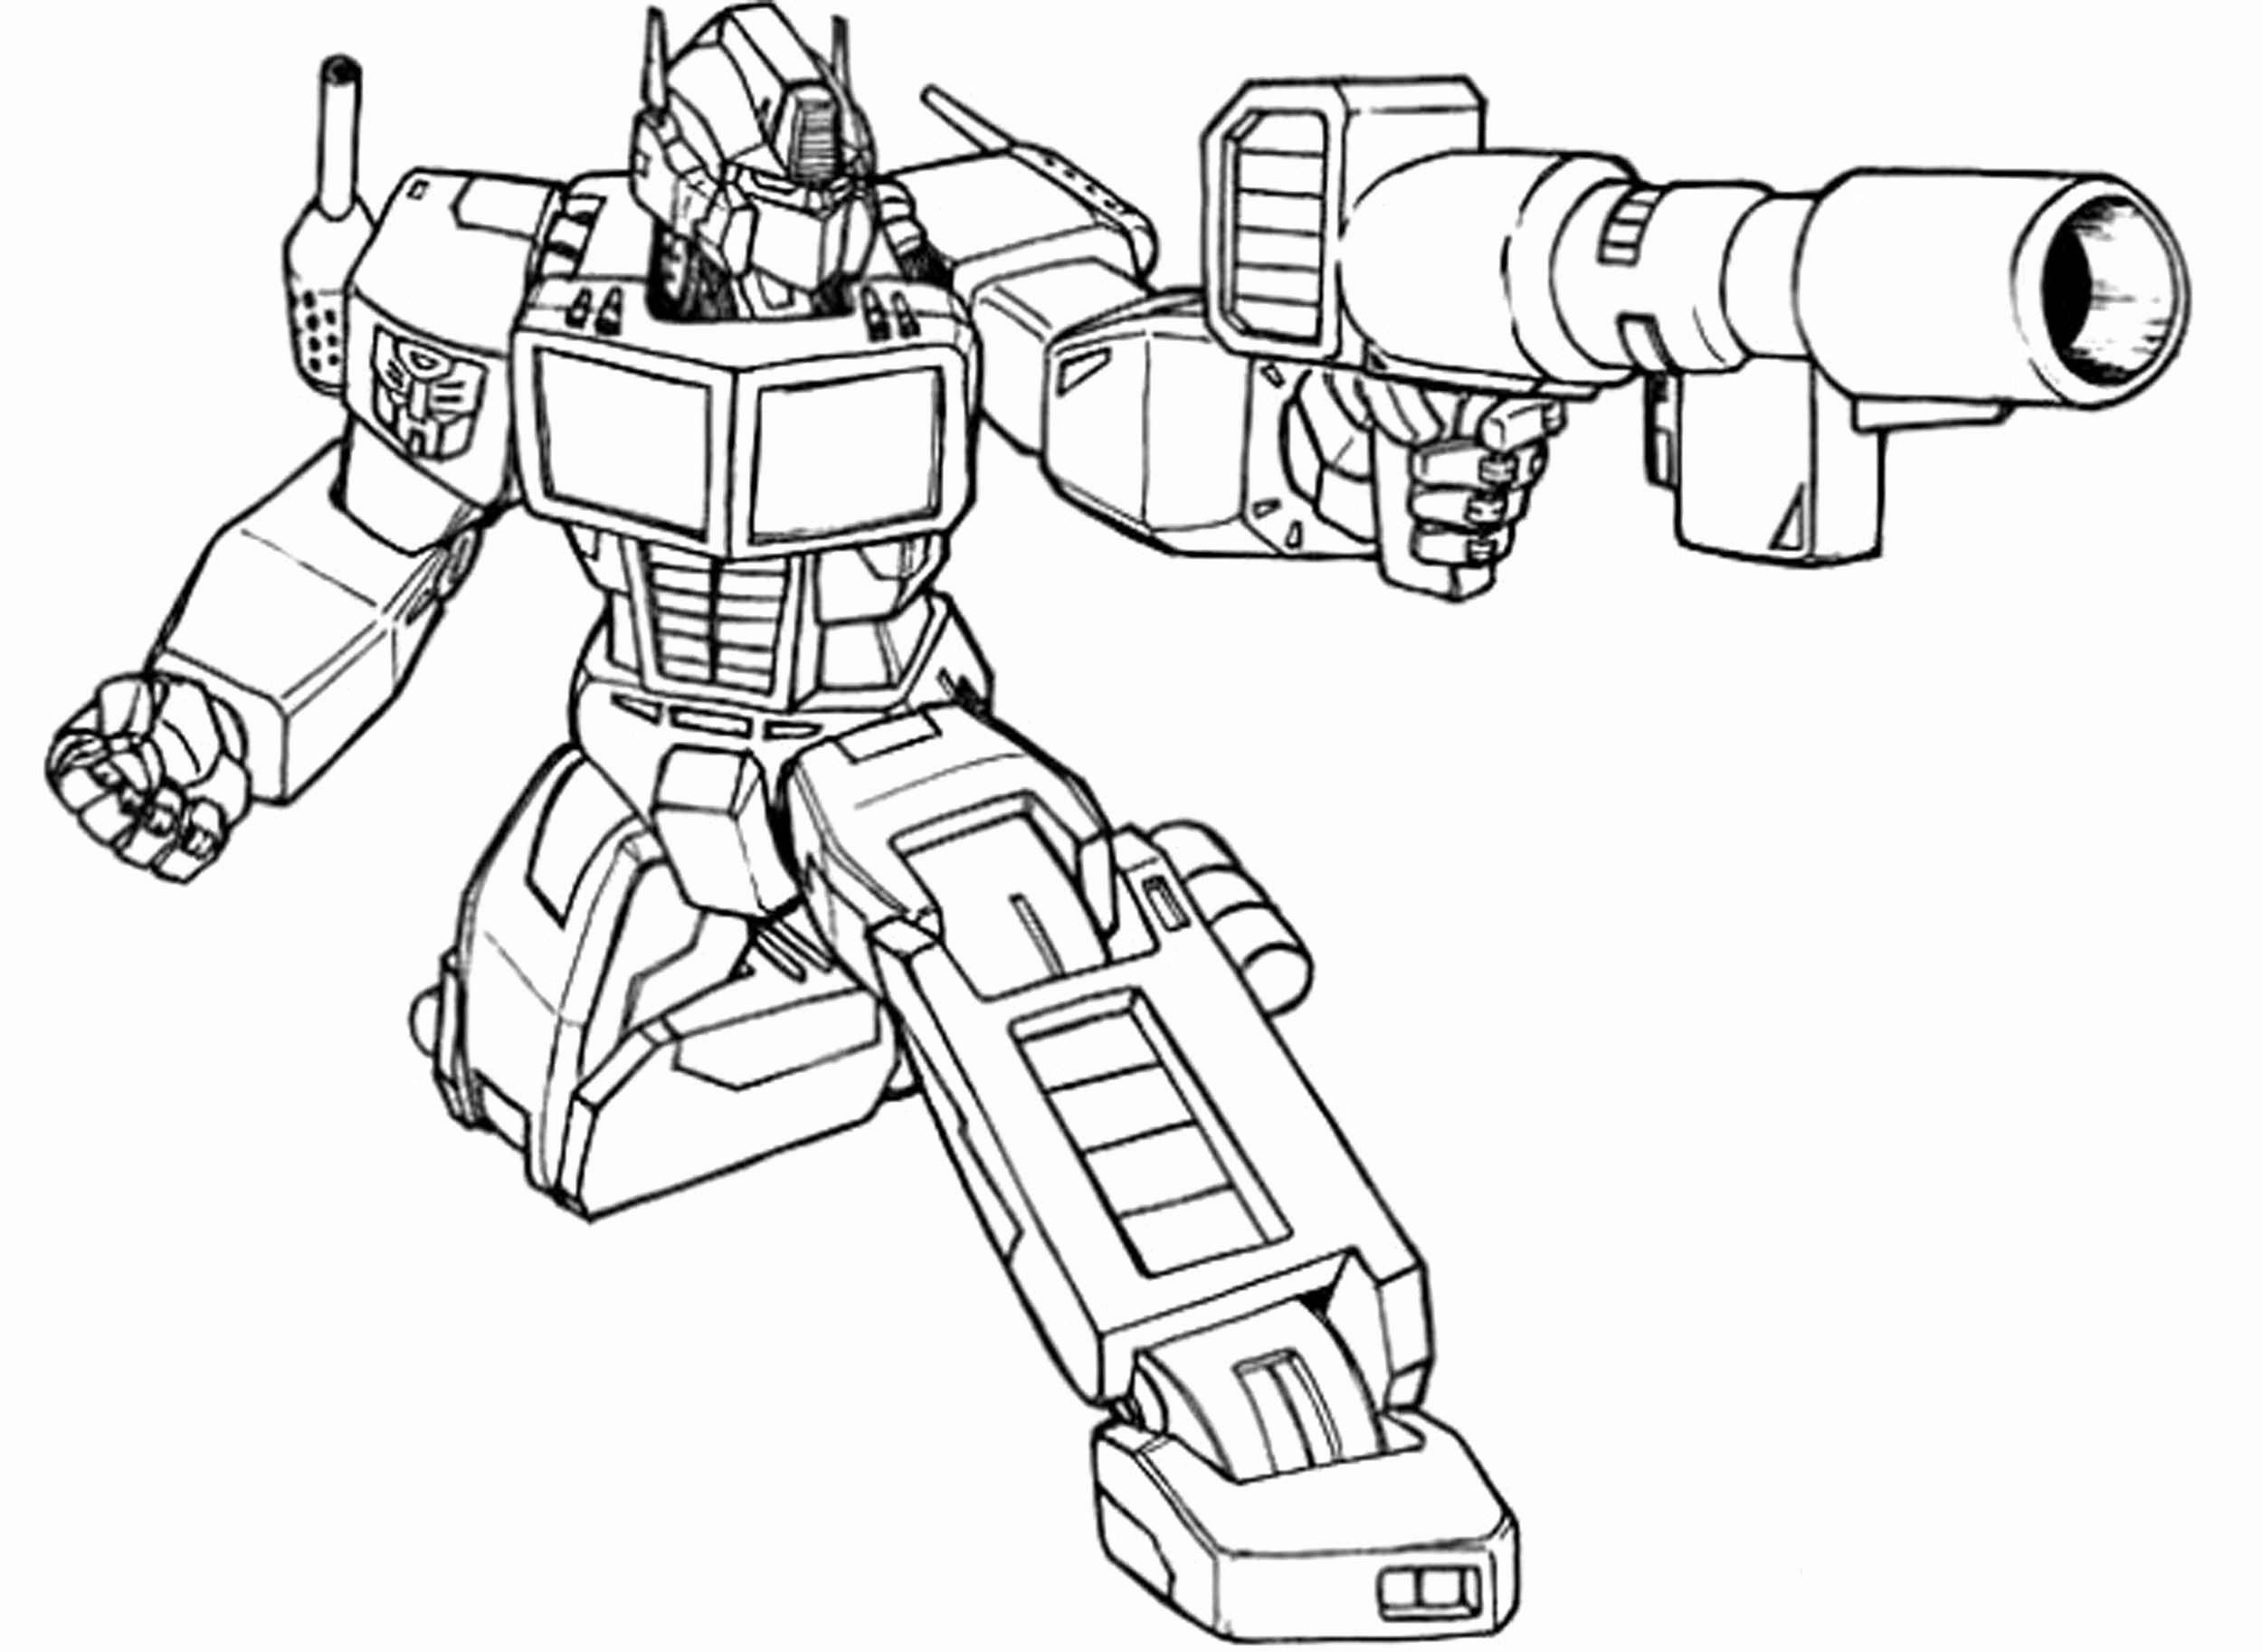 Angry Birds Transformers Coloring Page Beautiful Transformers Coloring Pages Pdf Free For Intende Transformers Coloring Pages Bee Coloring Pages Coloring Pages